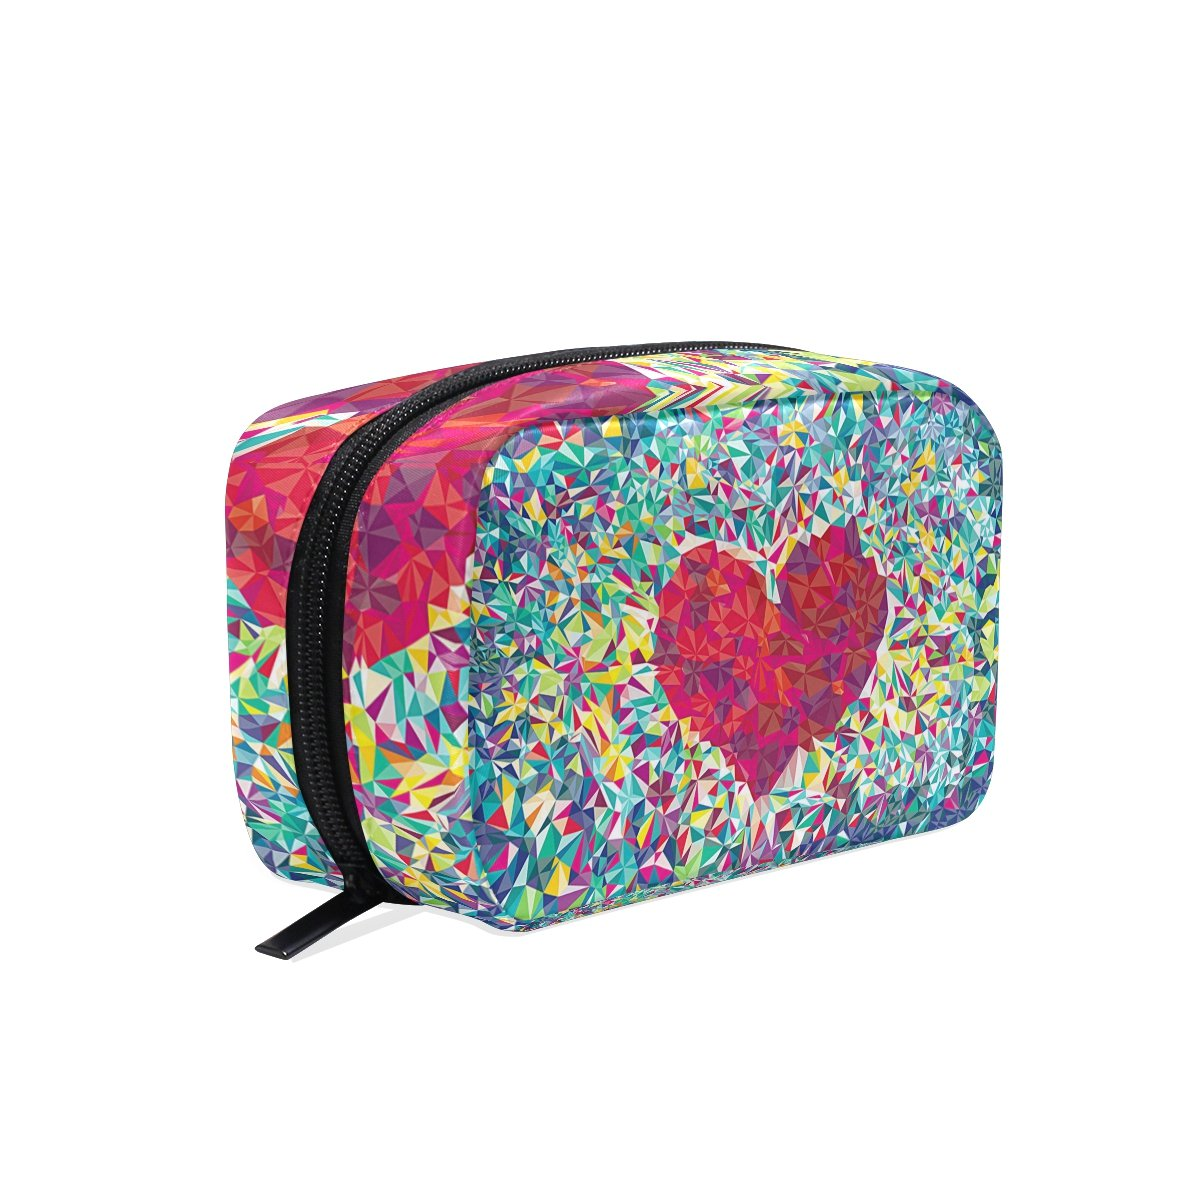 Amazon.com : LORVIES Red Heart Shape Cosmetic Pouch Clutch Makeup Bag Travel Organizer Case Toiletry Pouch for Women : Beauty